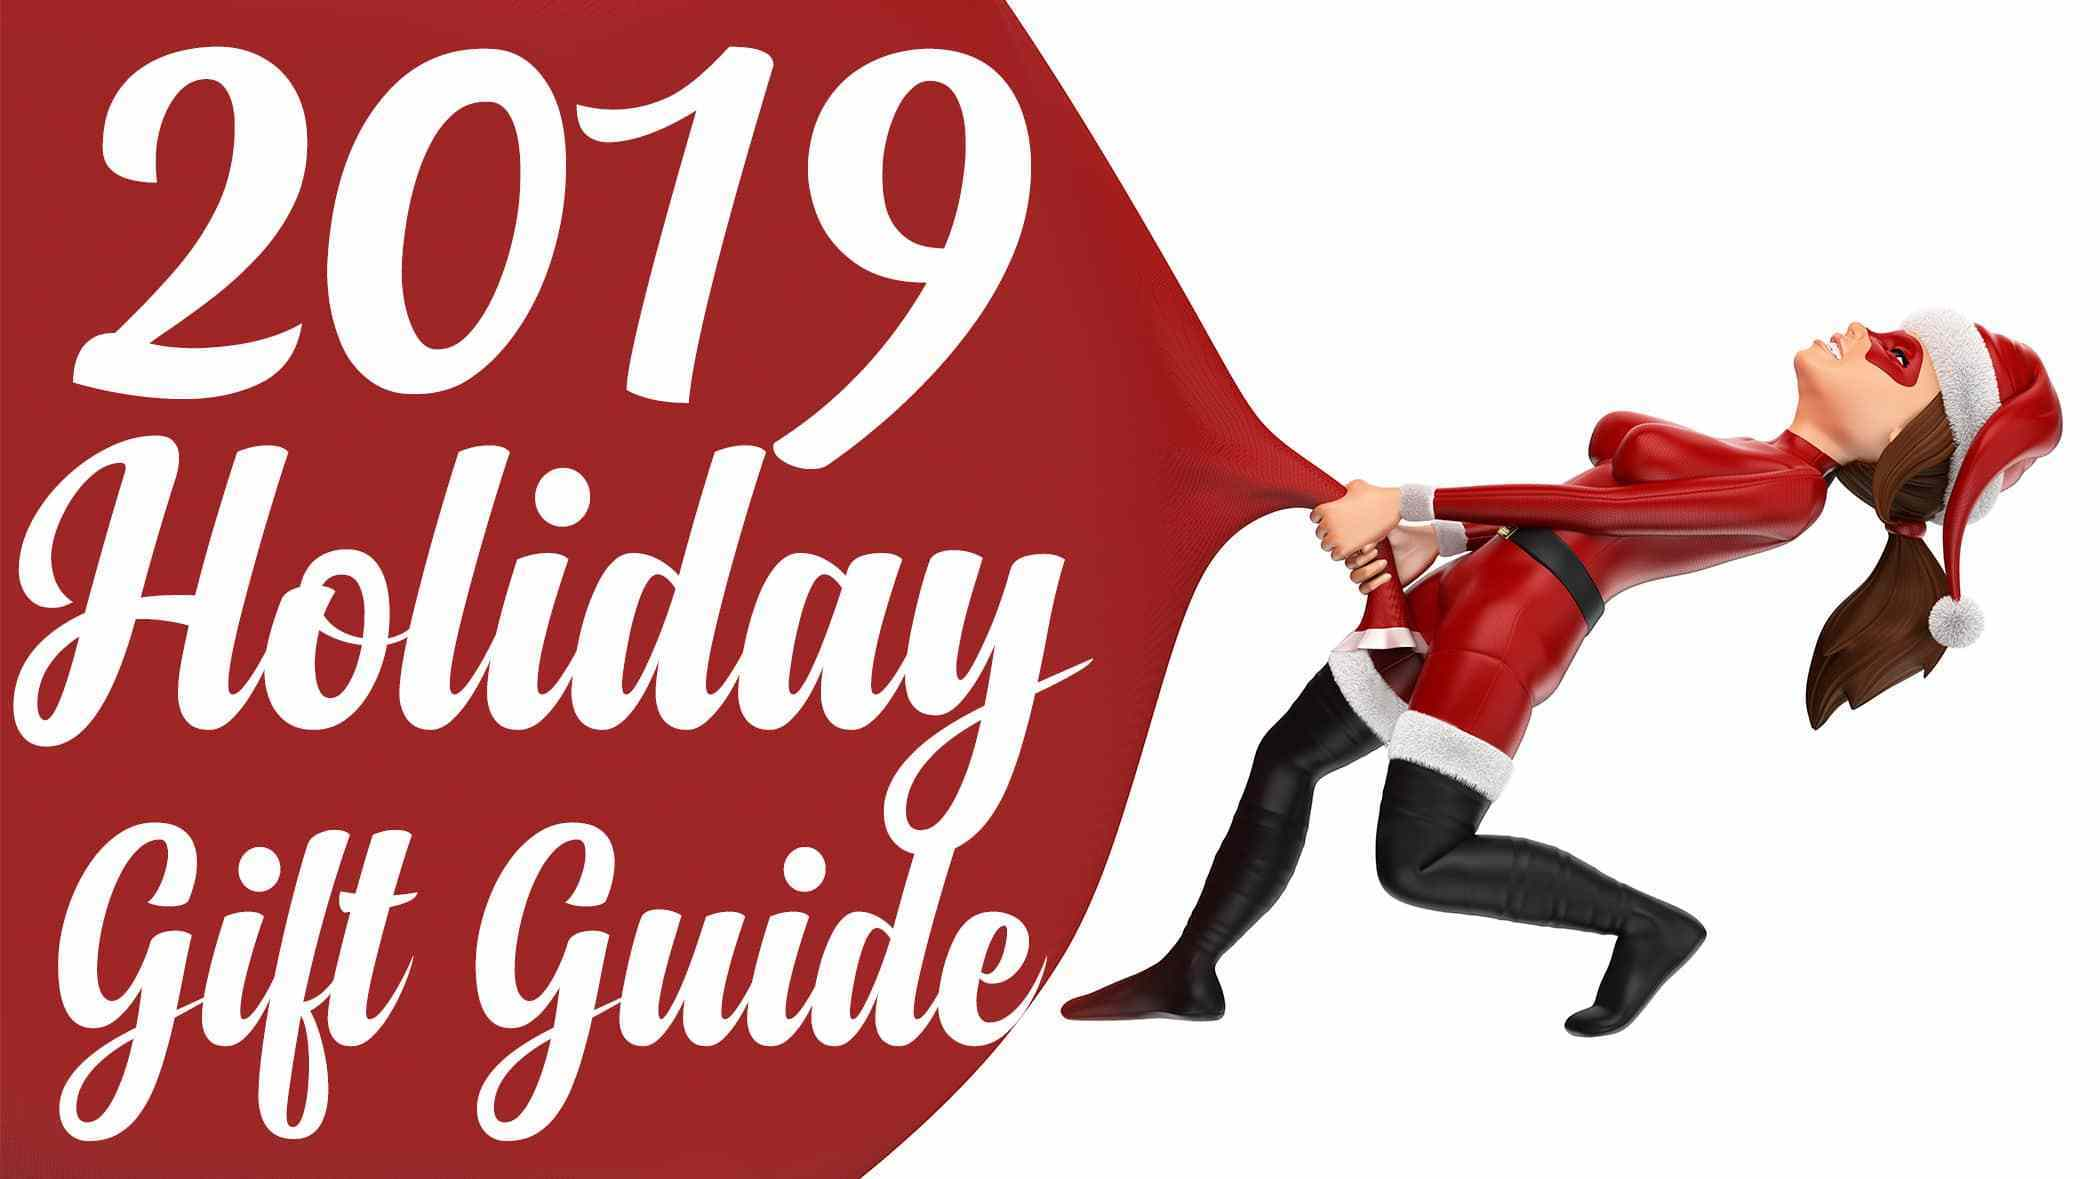 Holiday Shopping Guide Deals coupon codes